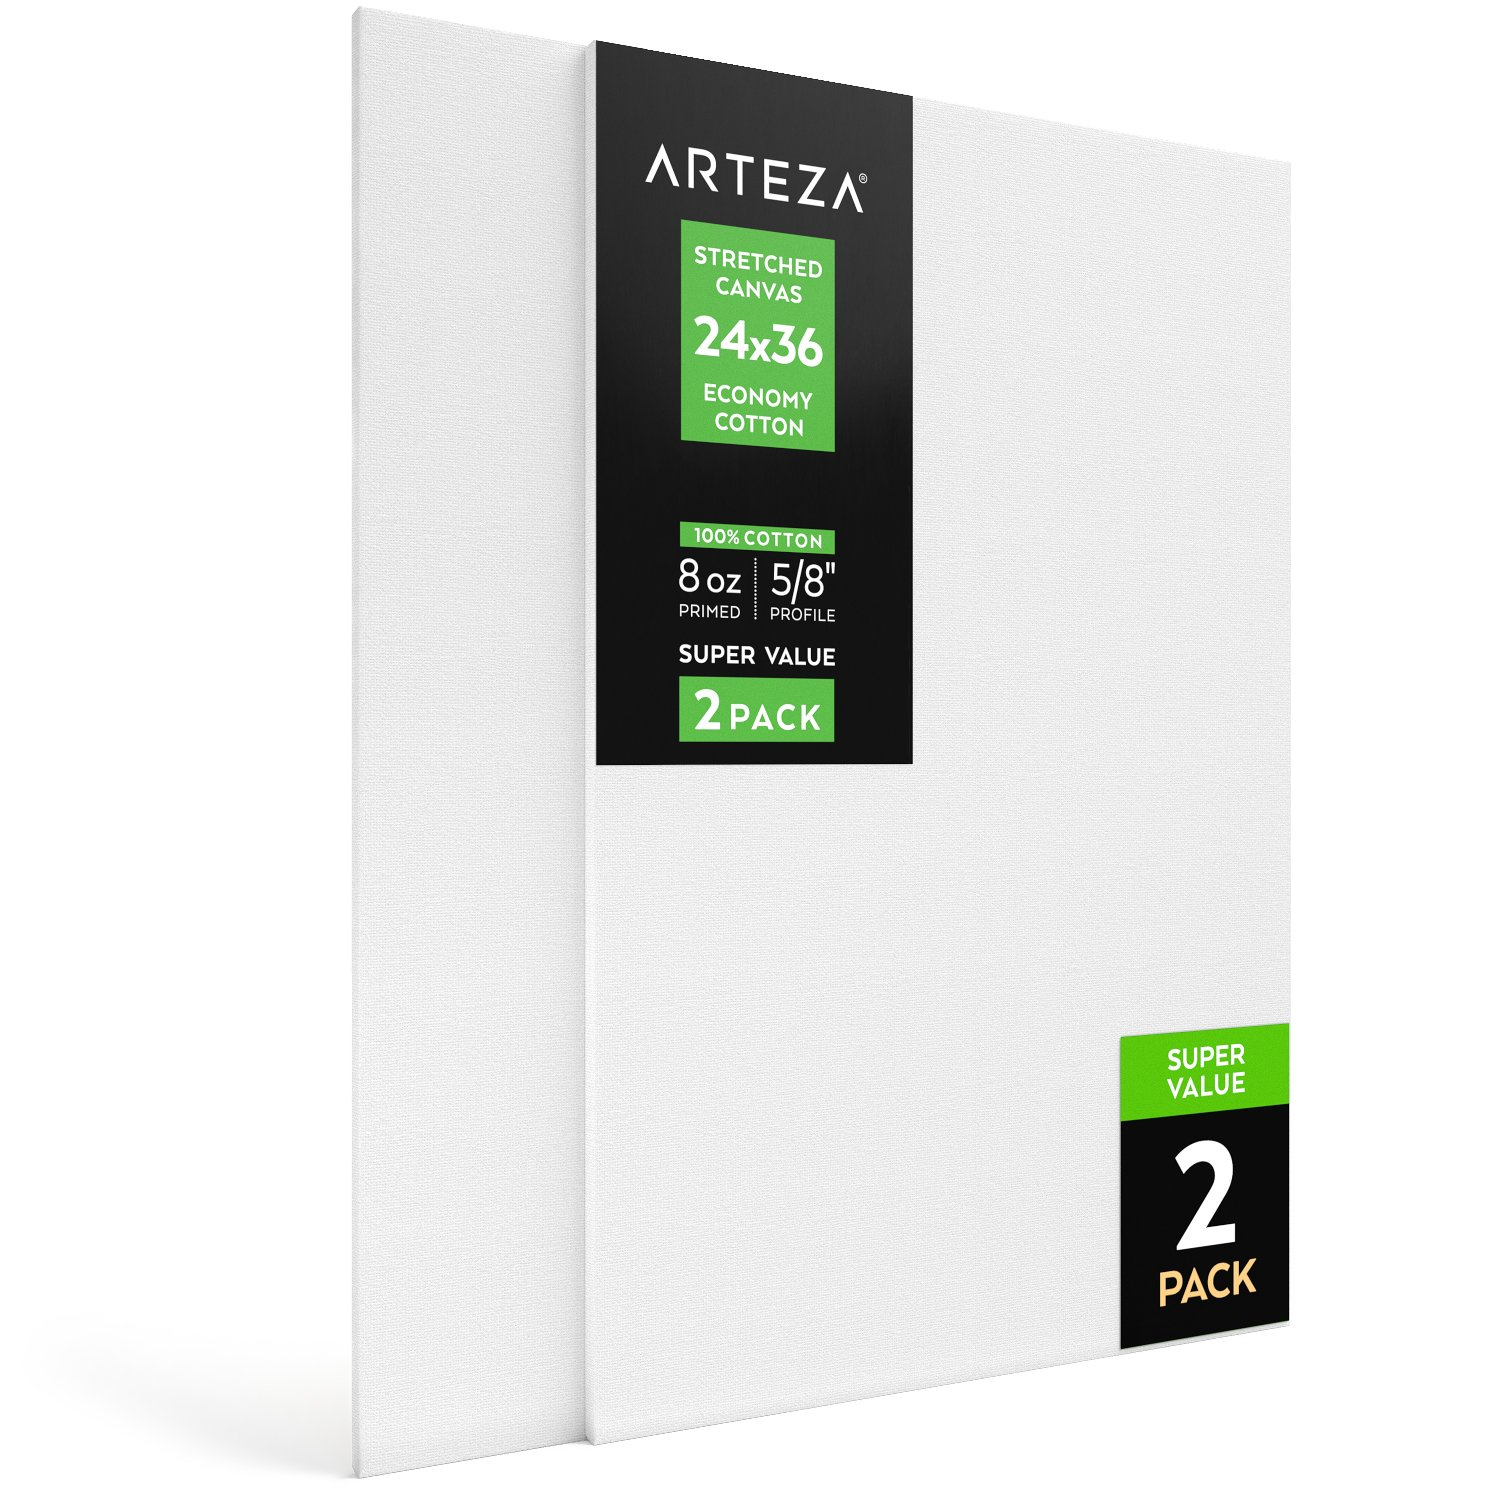 Arteza 24x36'' Stretched White Blank Canvas, Bulk Pack of 2, Primed, 100% Cotton for Painting, Acrylic Pouring, Oil Paint & Wet Art Media, Canvases for Professional Artist, Hobby Painters & Beginner by ARTEZA